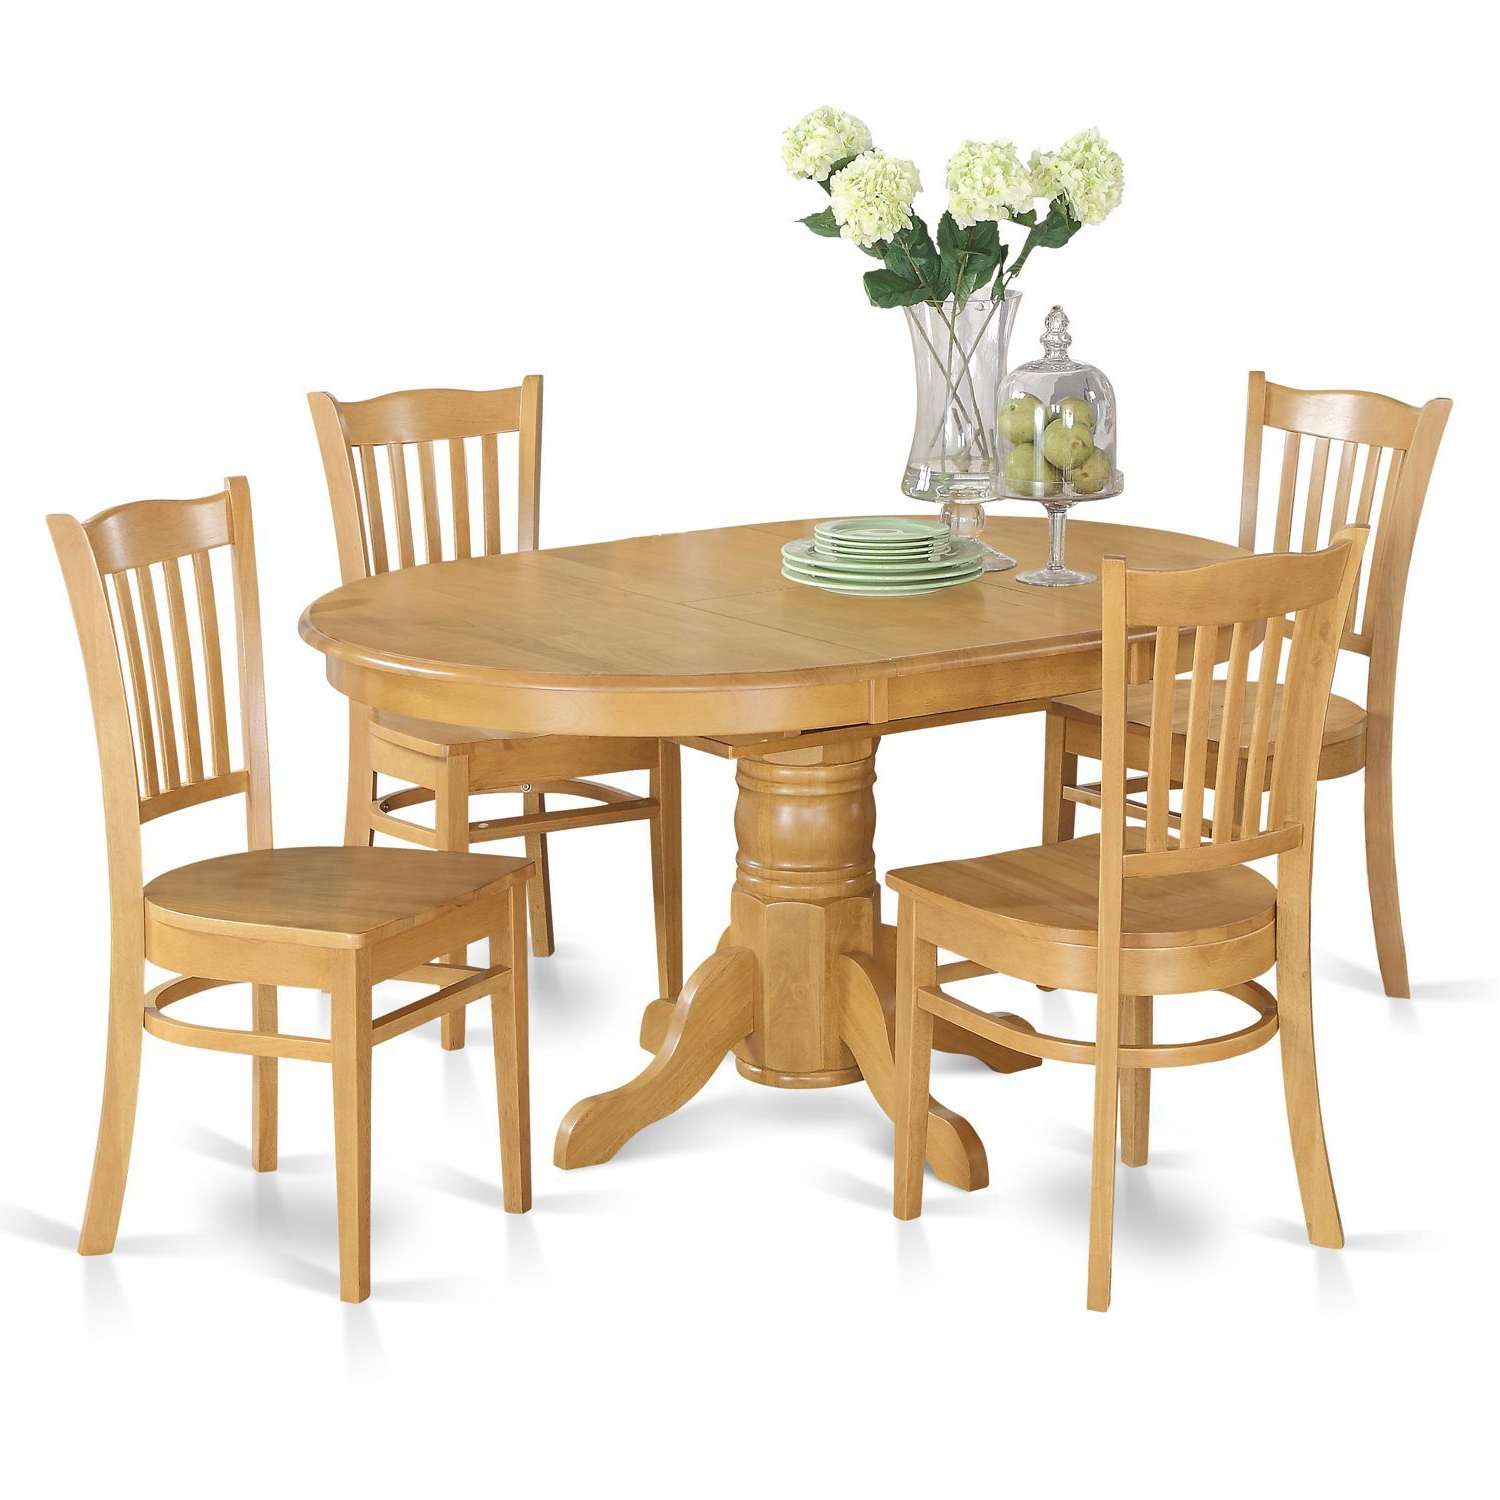 Most Up To Date 5 Piece Dining Table Set For 4  Table With Leaf And 4 Dining Chairs Within Goodman 5 Piece Solid Wood Dining Sets (Set Of 5) (View 14 of 25)